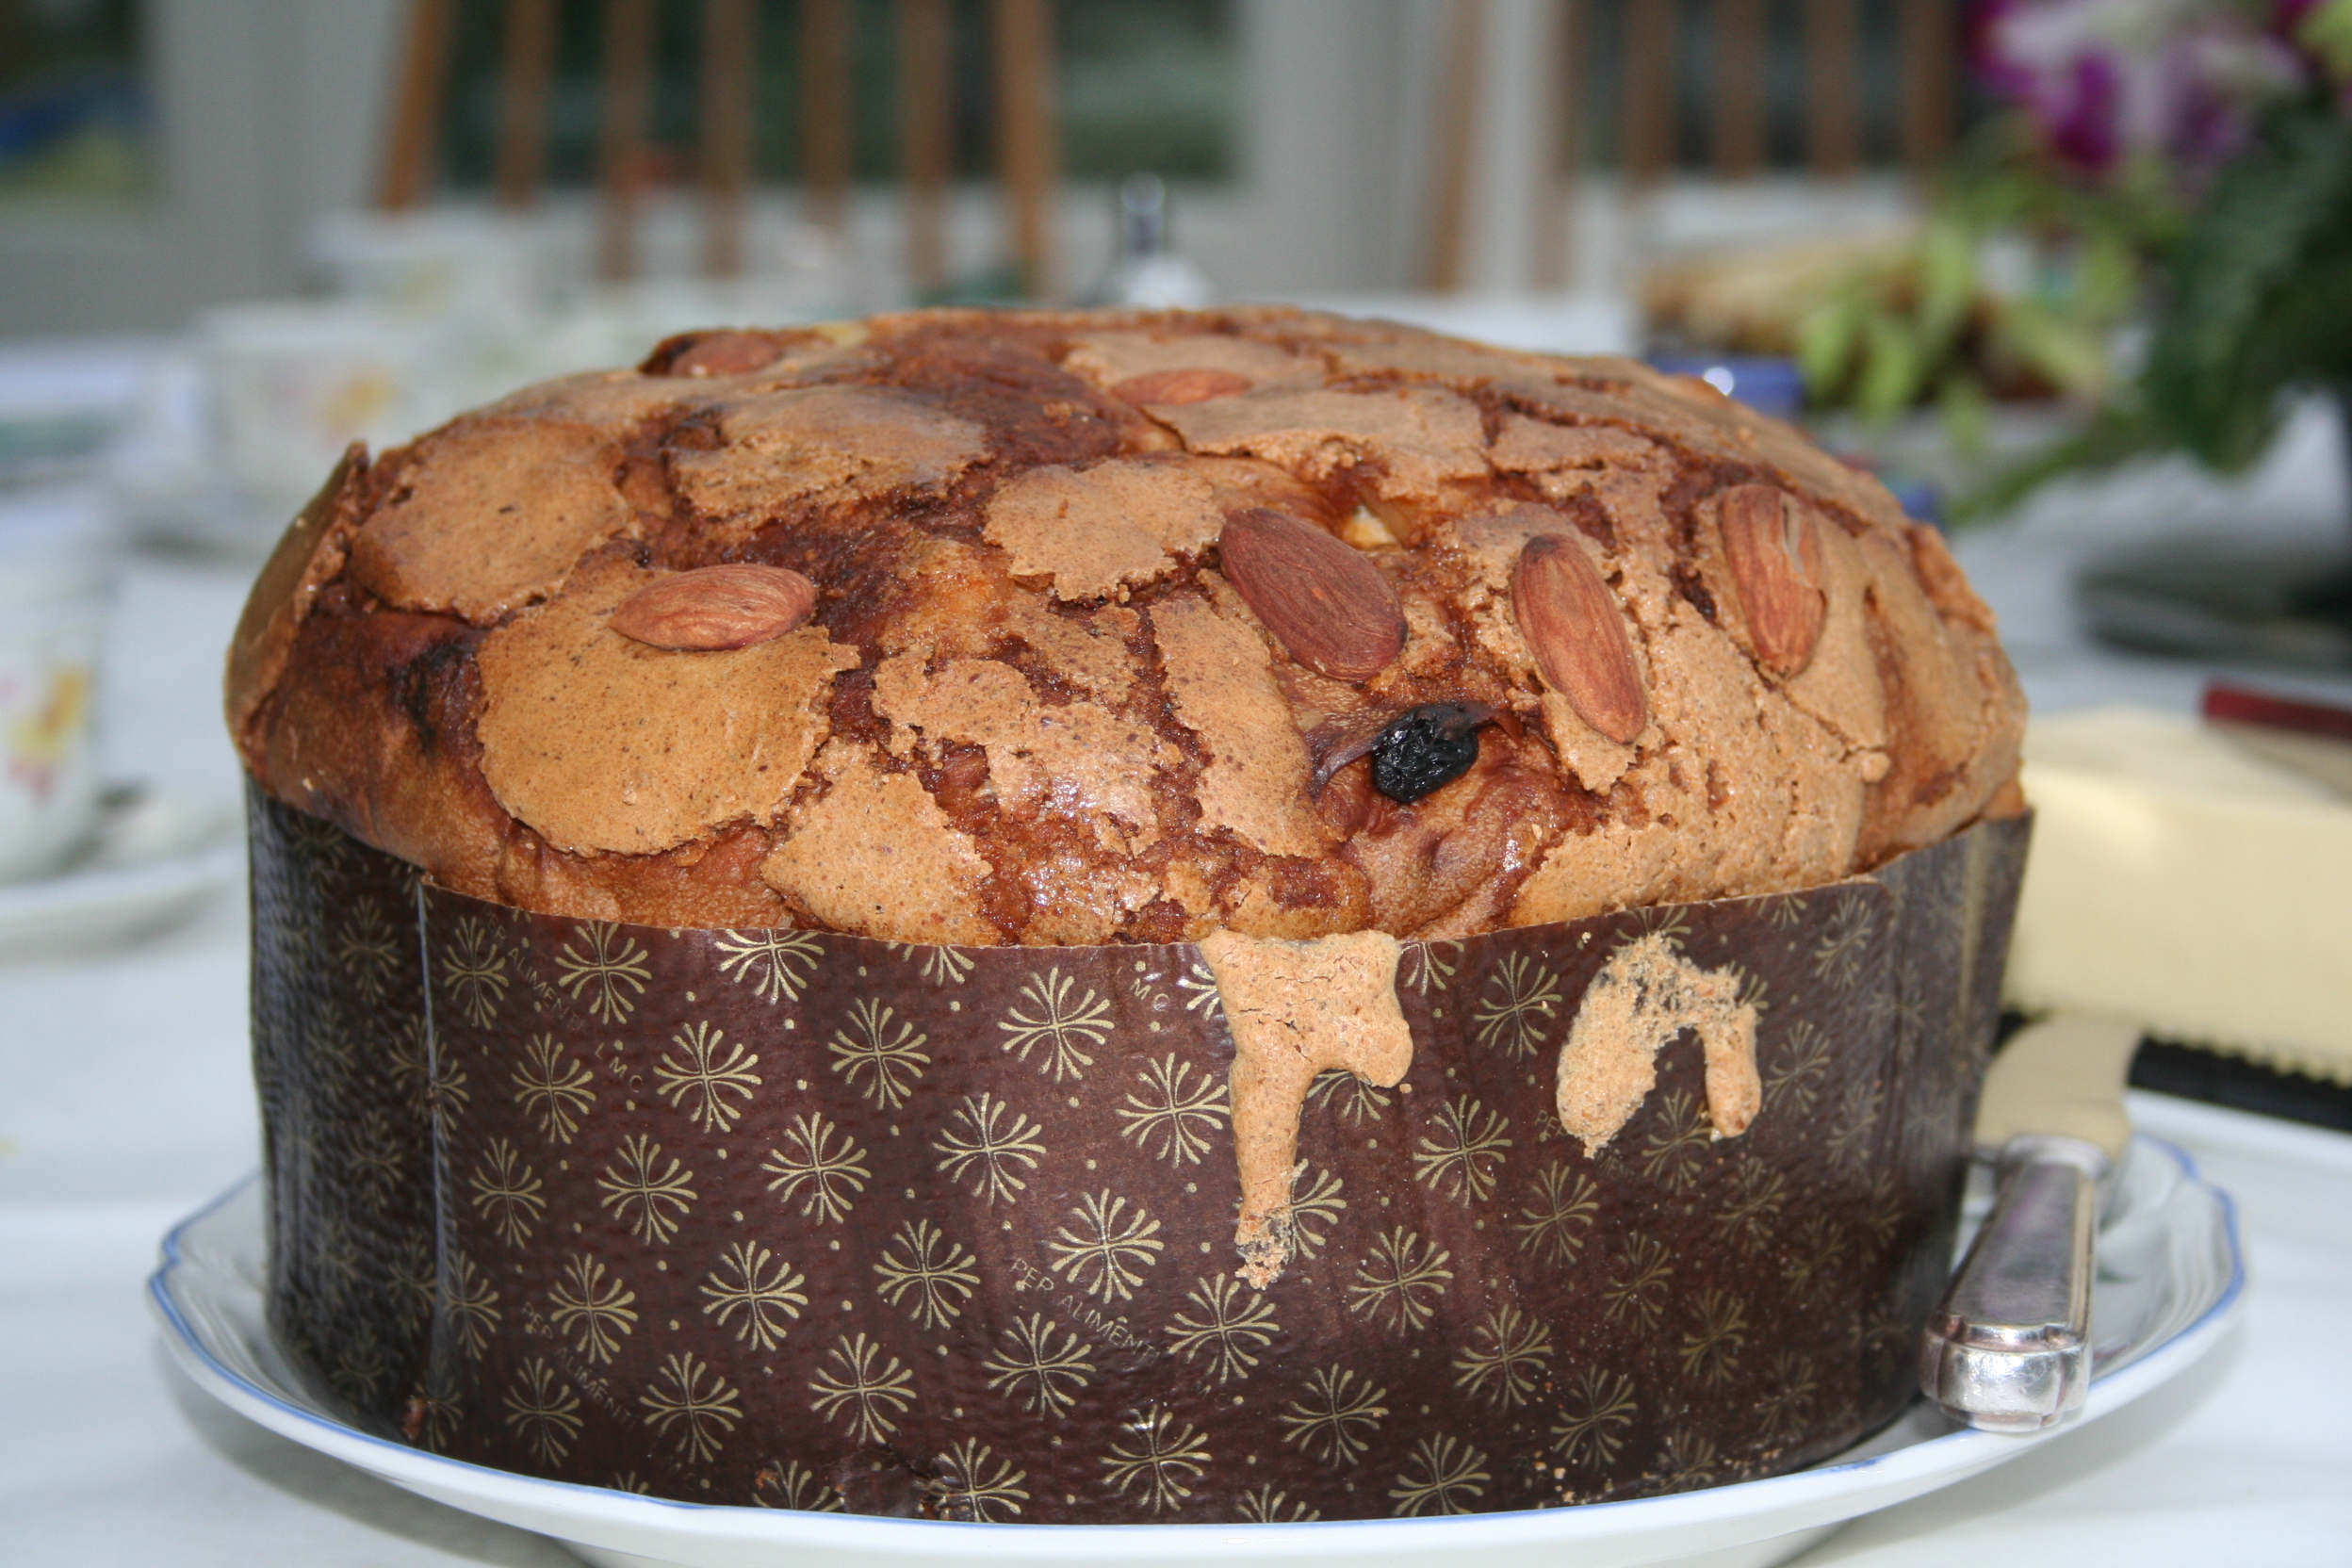 File:Whole panettone.jpg - Wikipedia